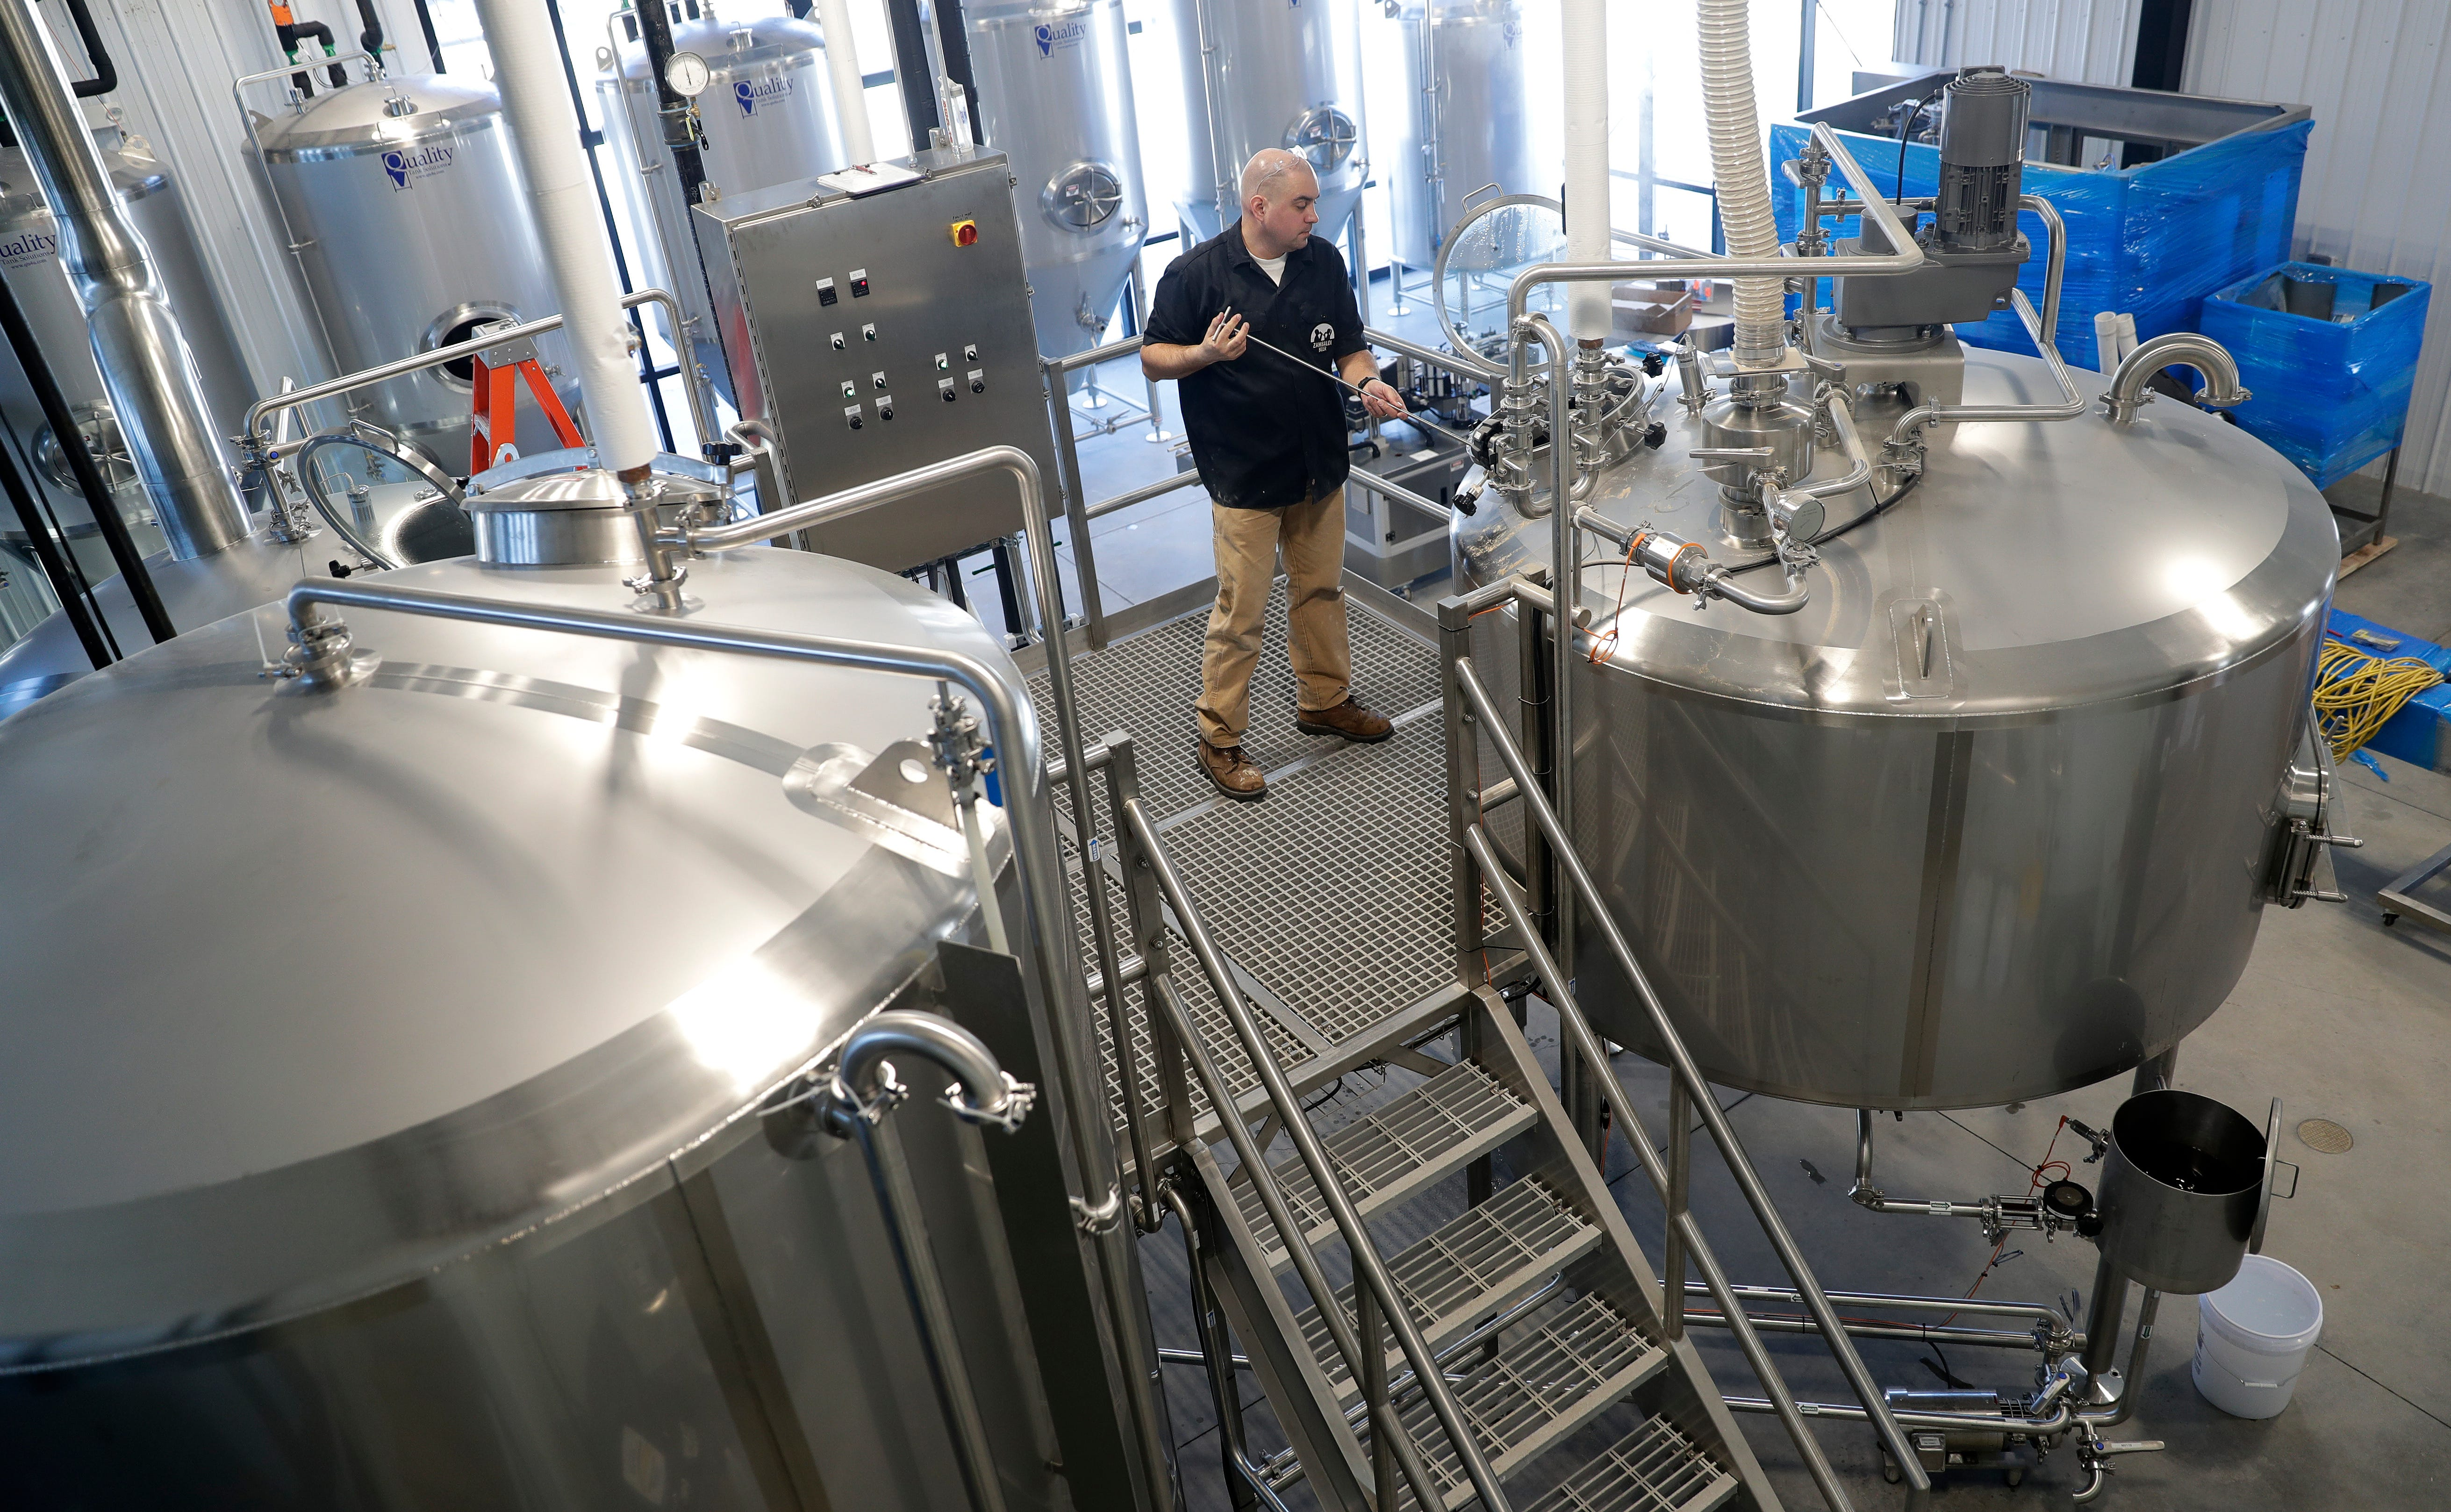 """""""Man it feels good to be brewing beer,"""" David Malcolm, owner of Zambaldi Beer, said as he brewed his first batch of beer at the new brewery in Allouez."""